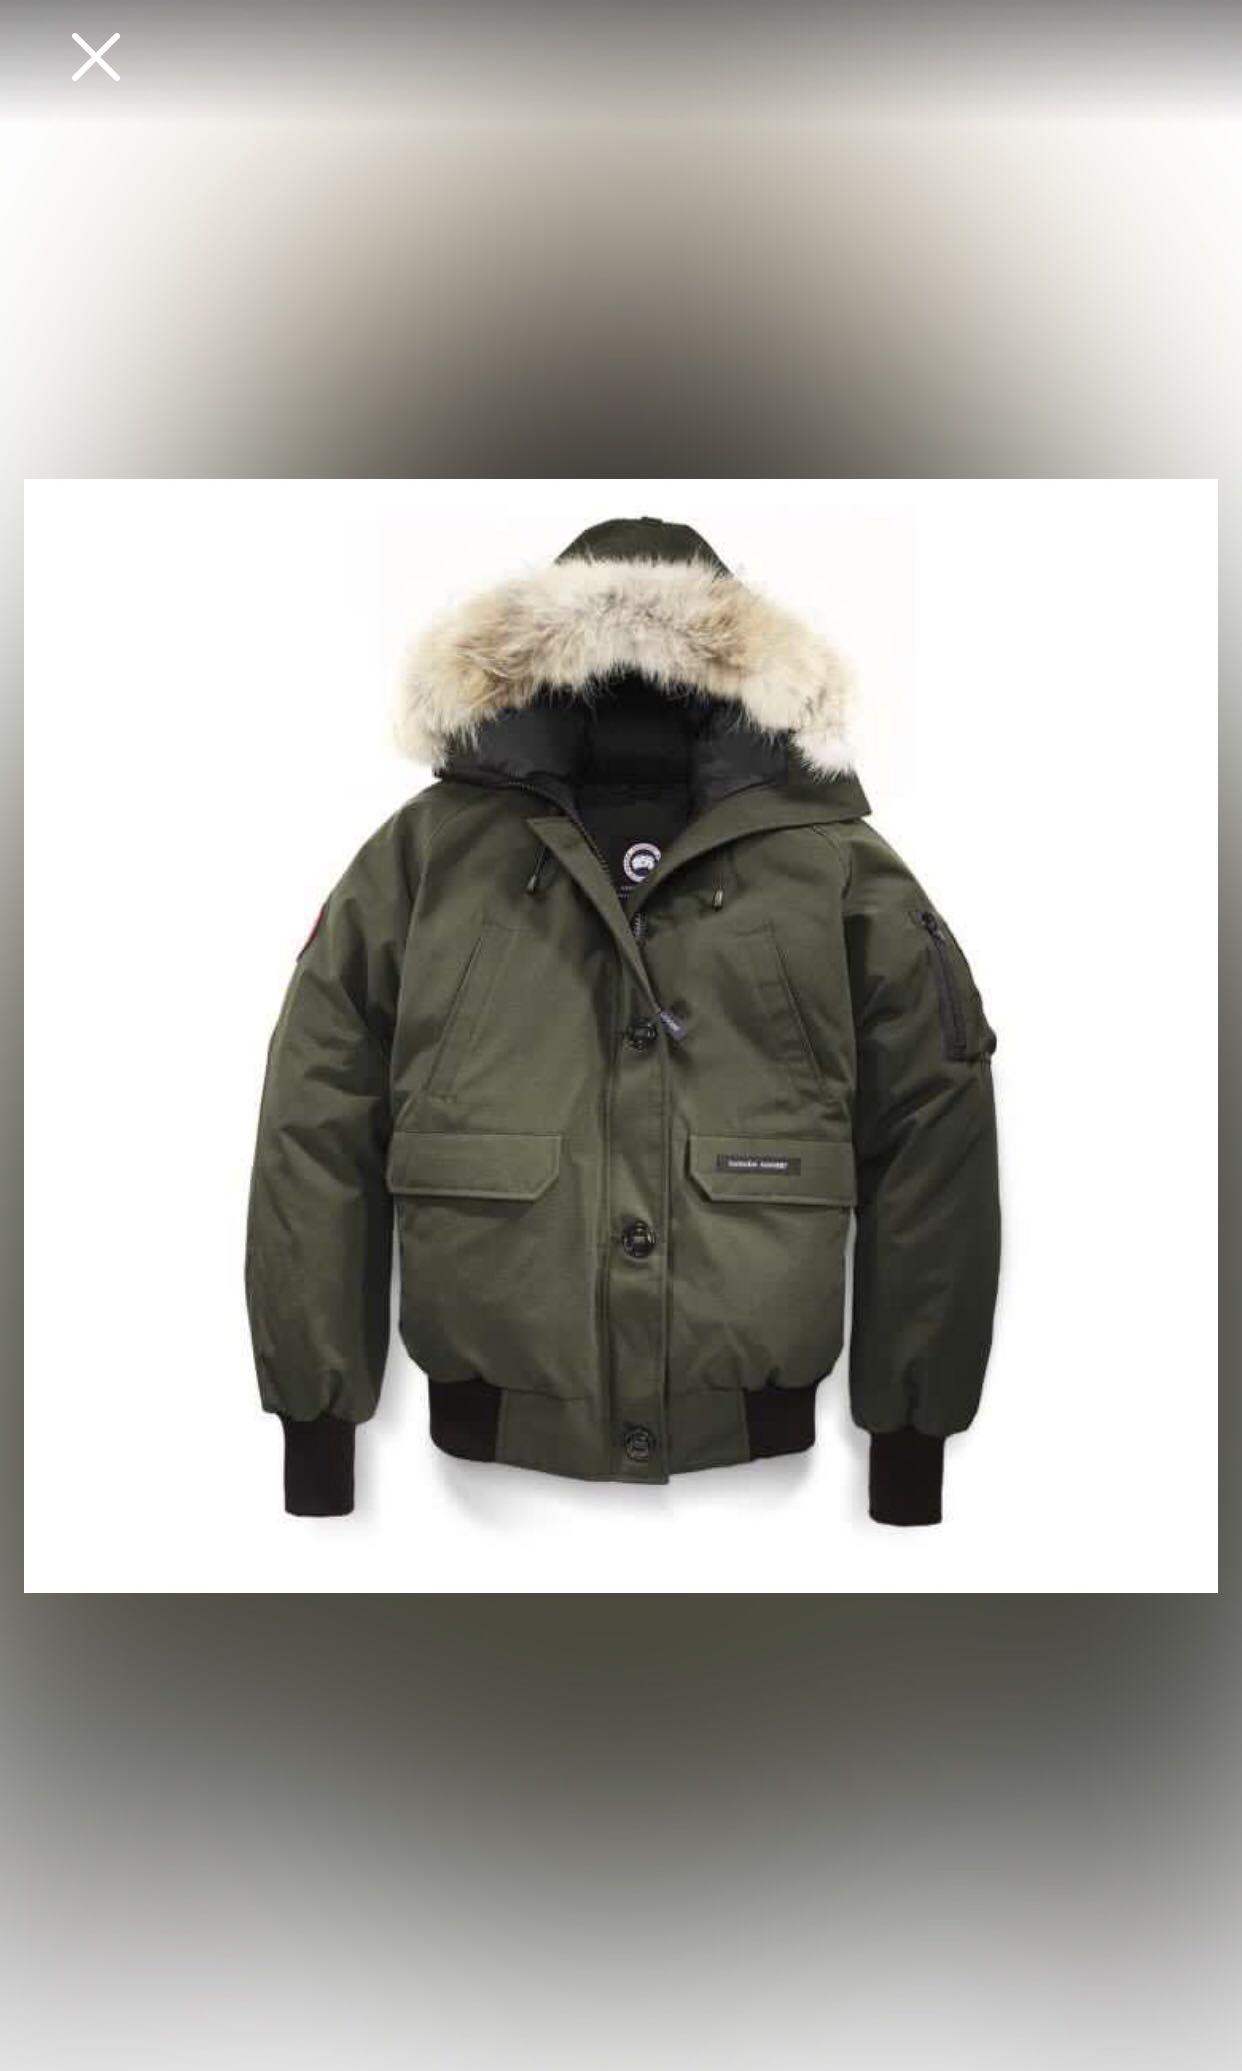 Unisex Authentic Canada Goose Bomber (Army Green)